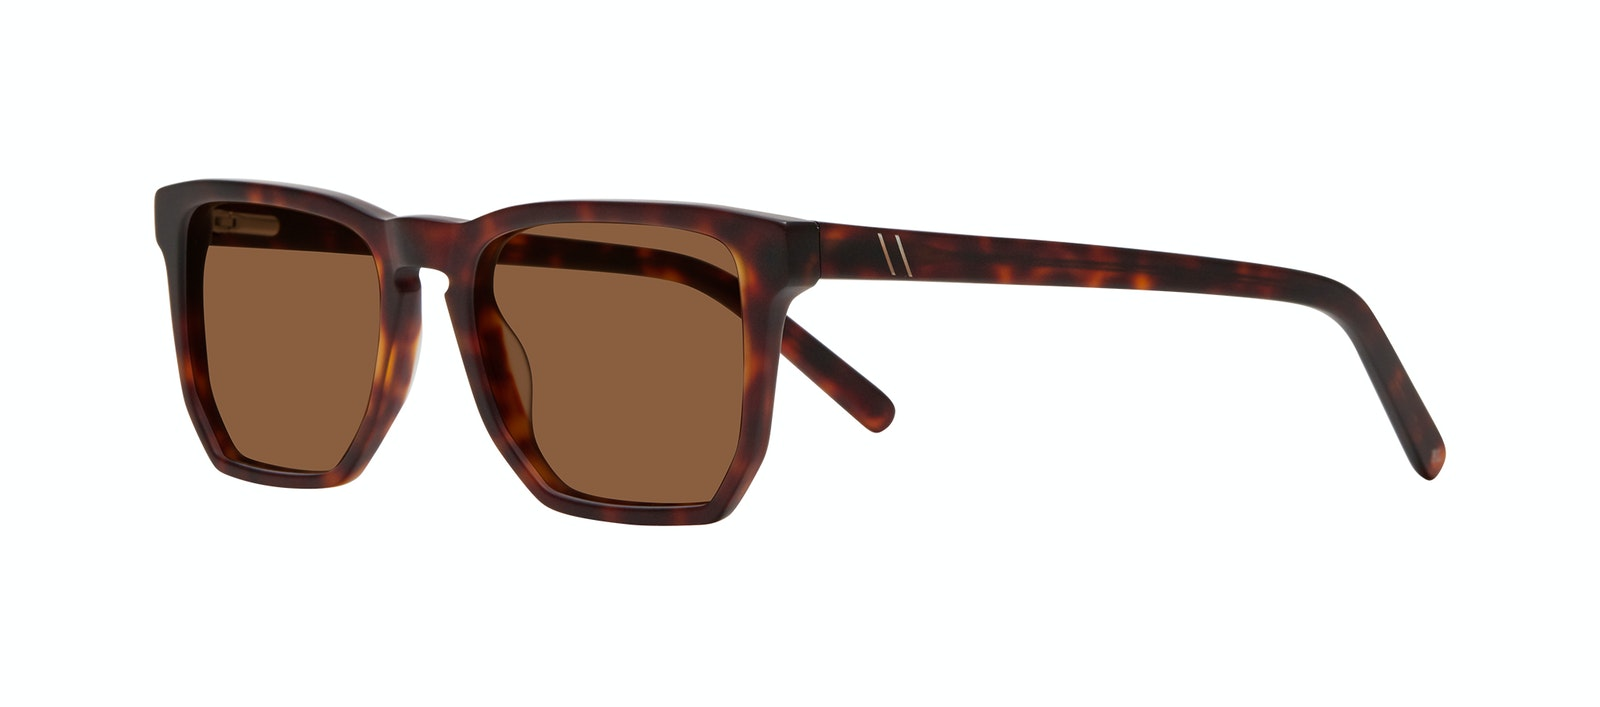 Affordable Fashion Glasses Square Sunglasses Men Andy Matte Tortoise Tilt